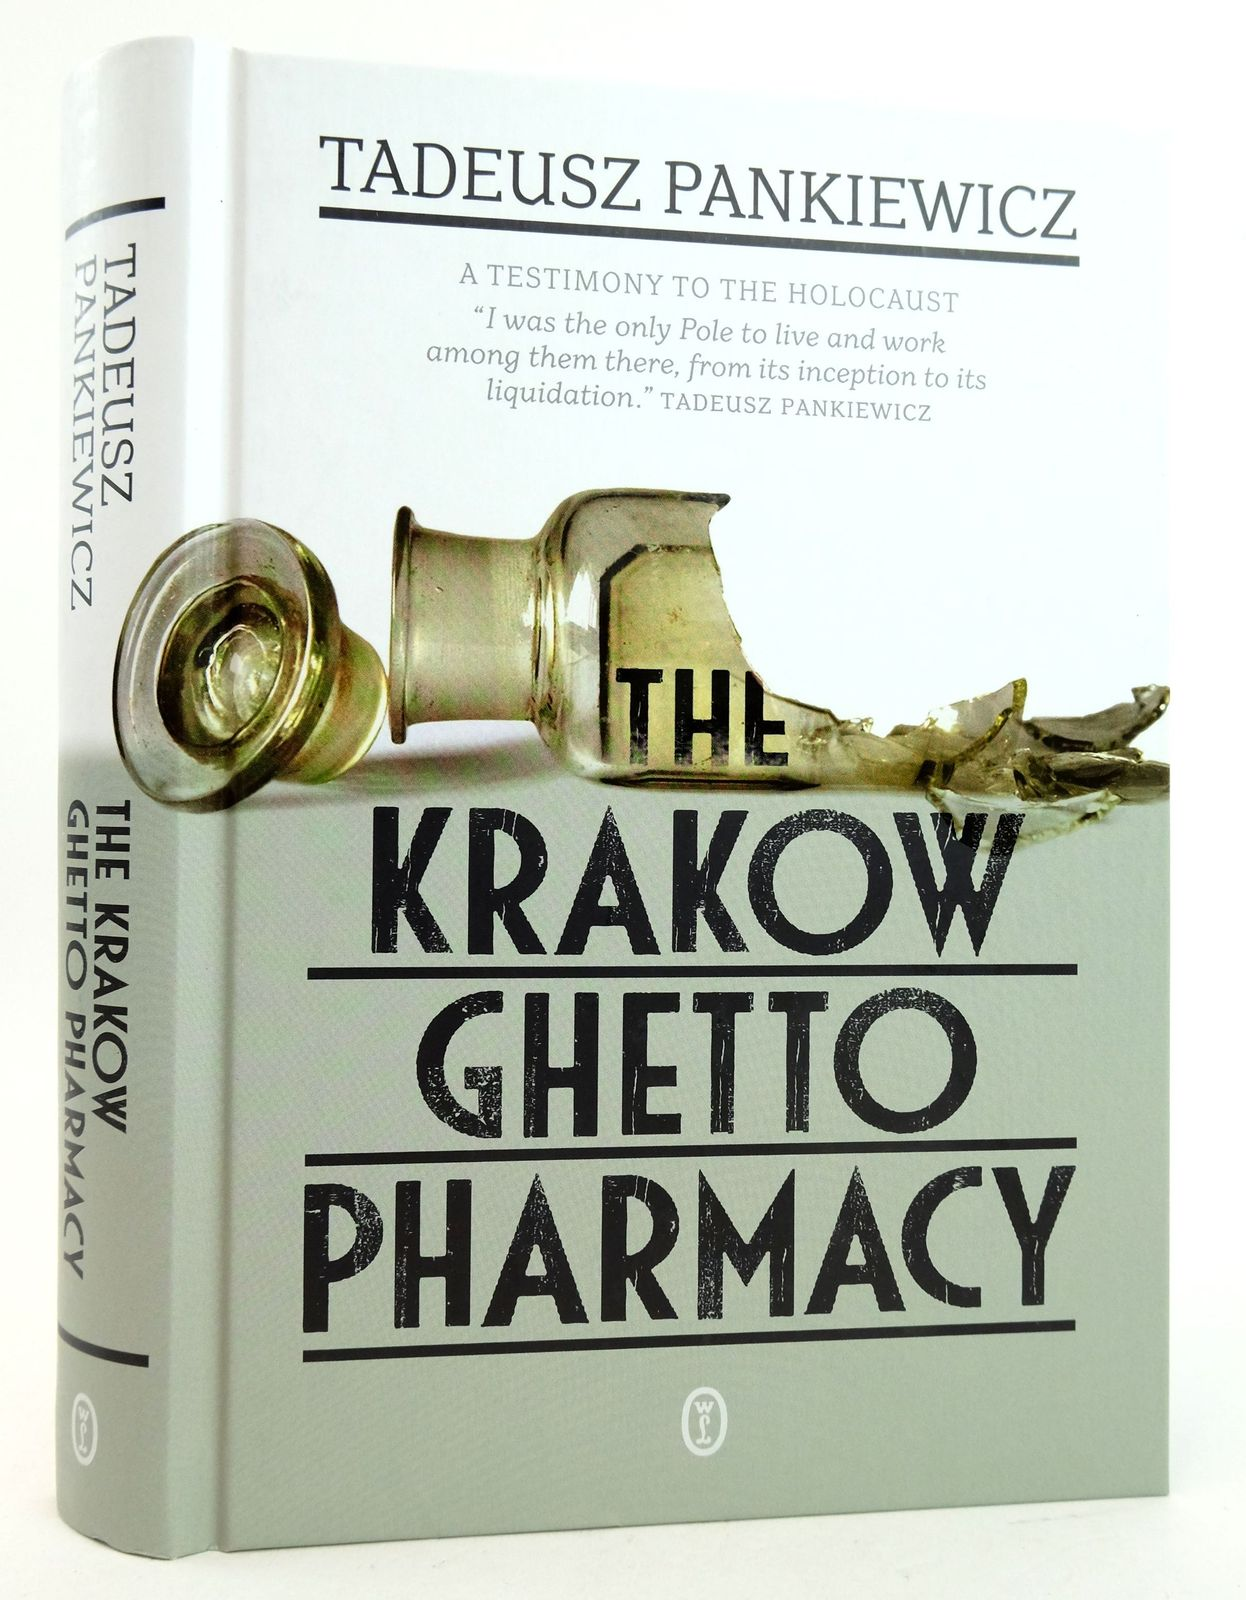 Photo of THE KRAKOW GHETTO PHARMACY written by Pankiewicz, Tadeusz published by Wydawnictwo Literackie (STOCK CODE: 1819409)  for sale by Stella & Rose's Books